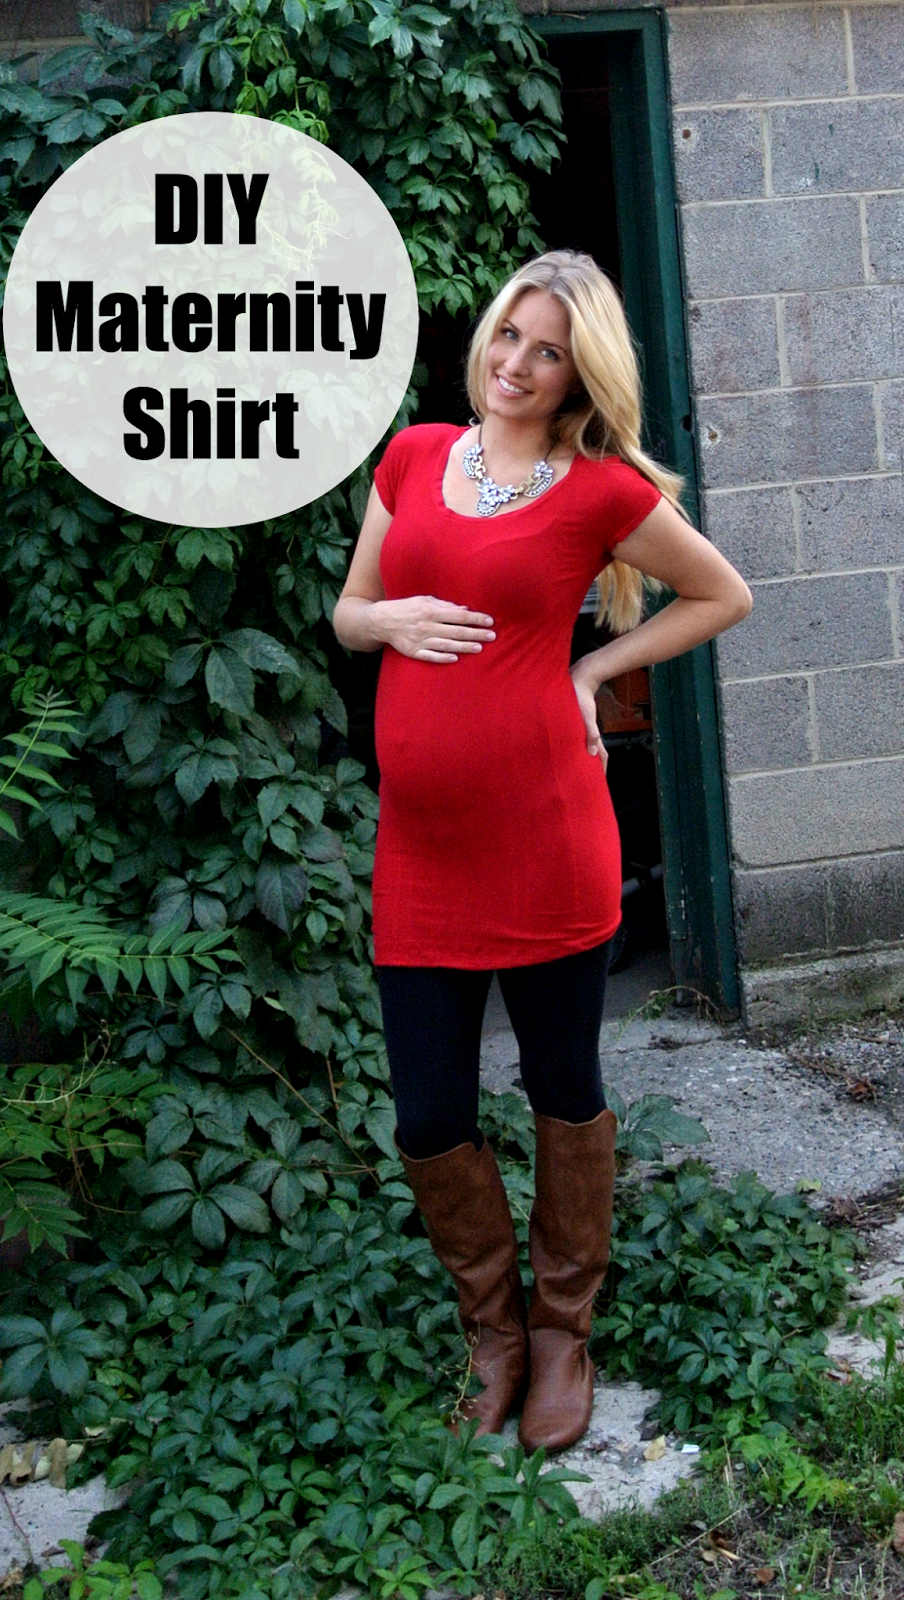 Simple diy maternity top uses an old shirt as a pattern best simple diy maternity top uses an old shirt as a pattern ombrellifo Images